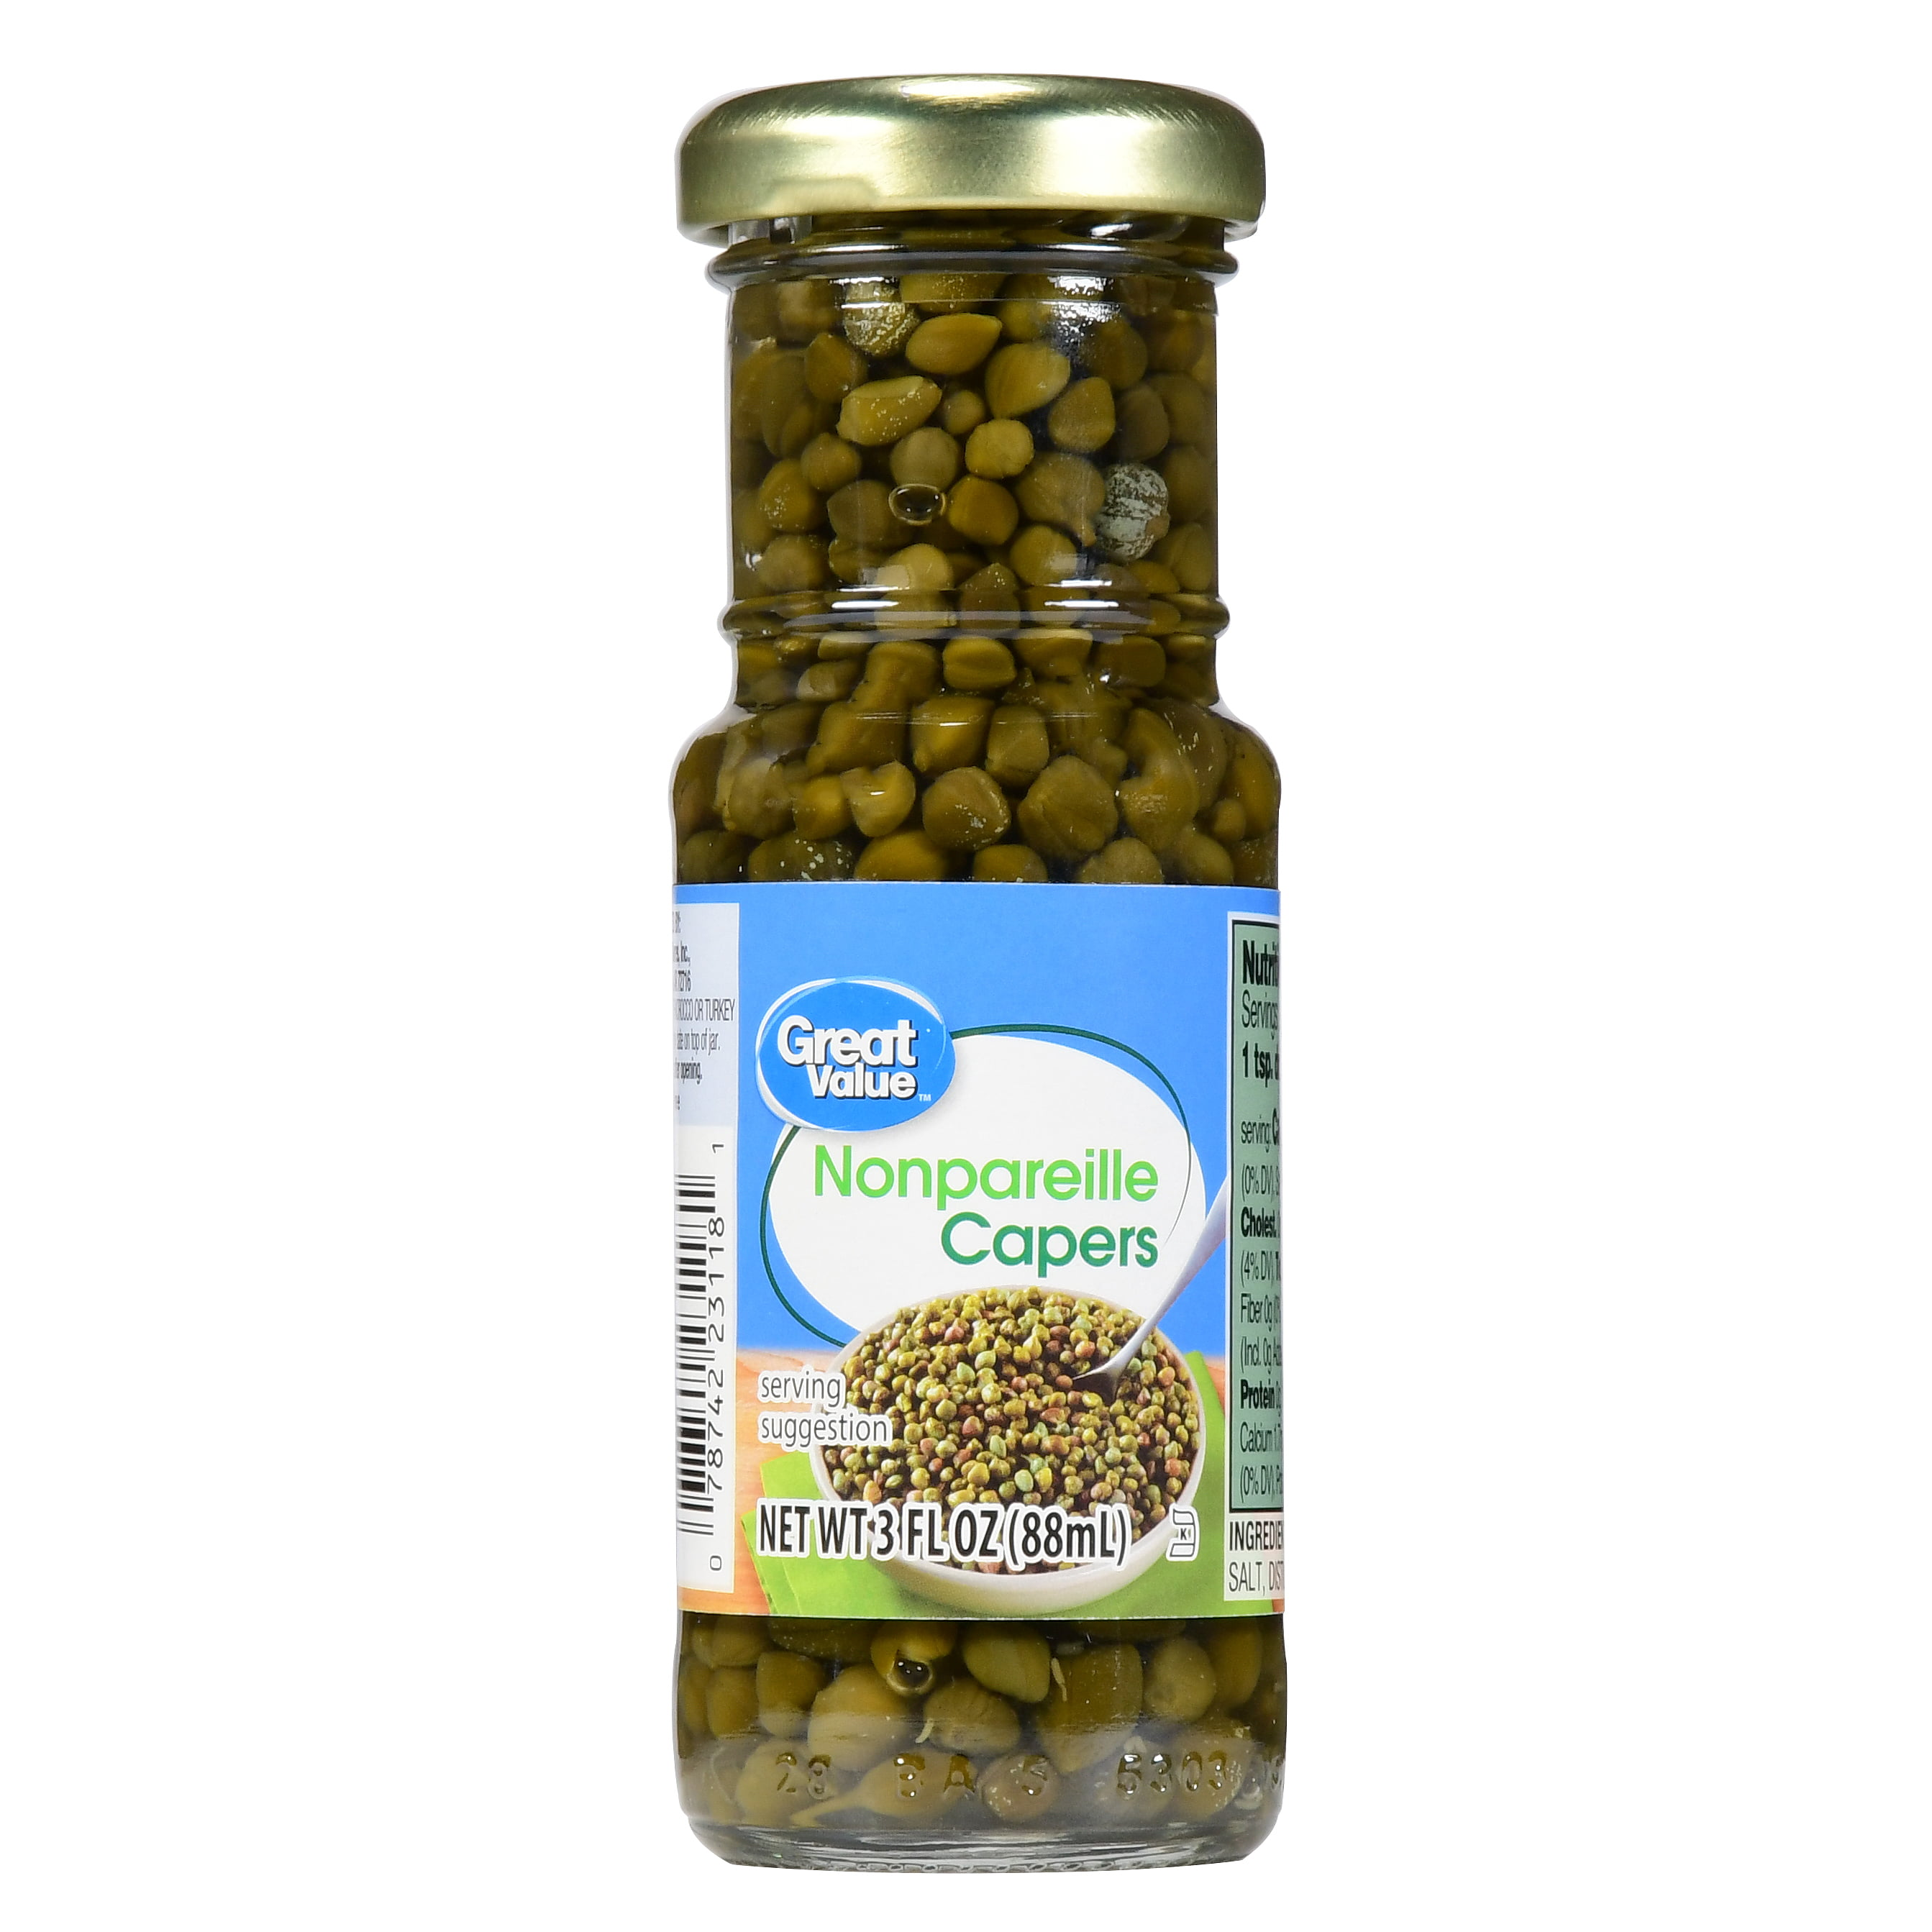 Great Value Nonpareille Capers, 3 fl oz by Wal-Mart Stores, Inc.